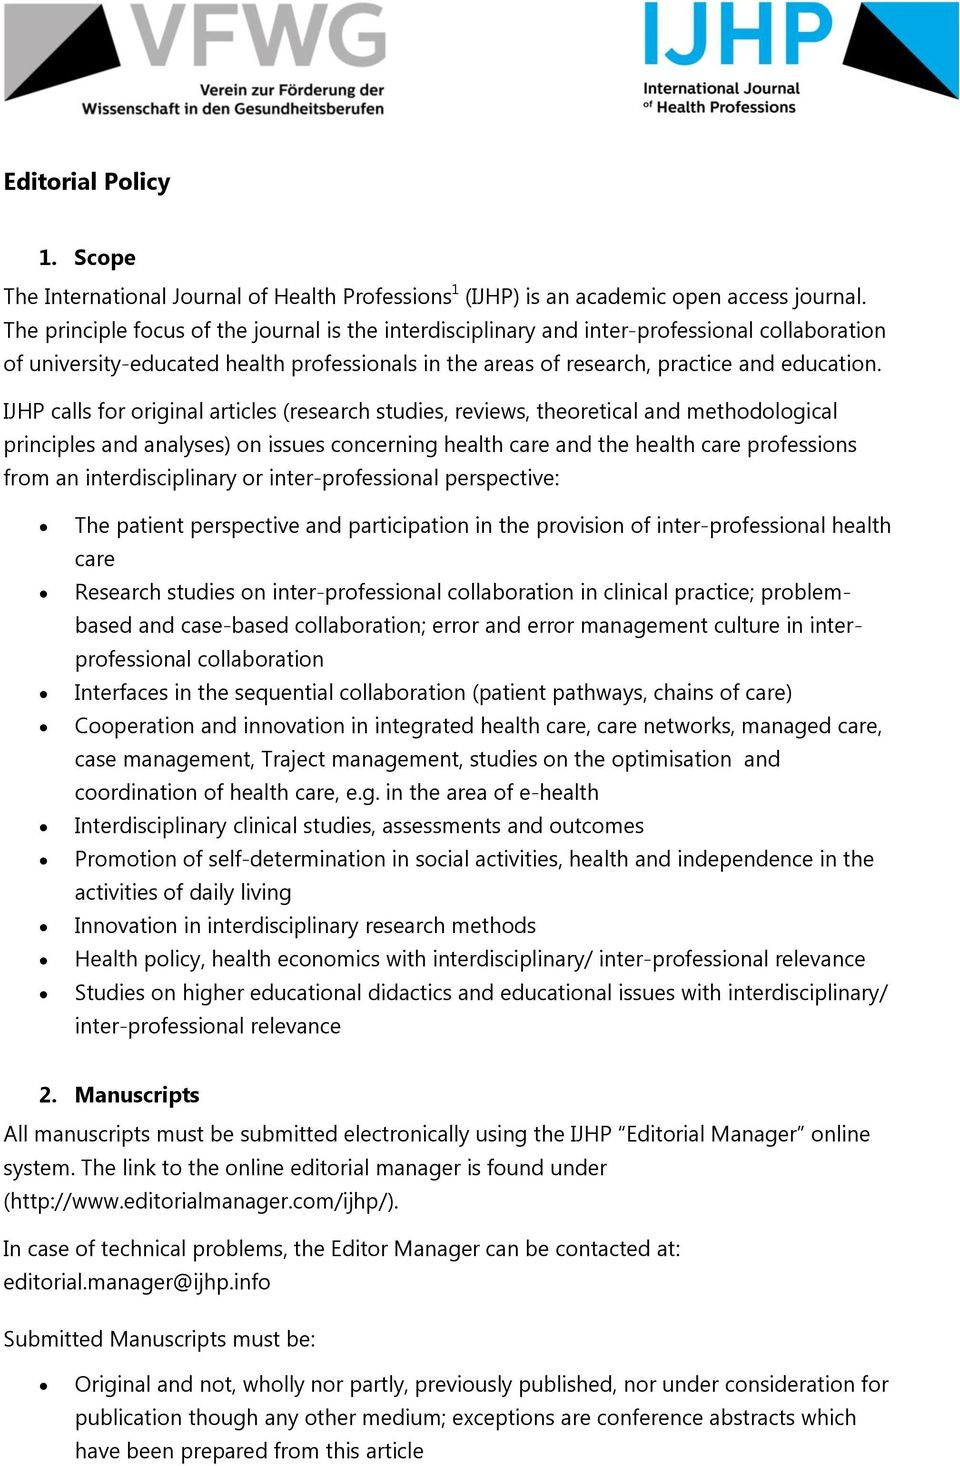 IJHP calls for original articles (research studies, reviews, theoretical and methodological principles and analyses) on issues concerning health care and the health care professions from an